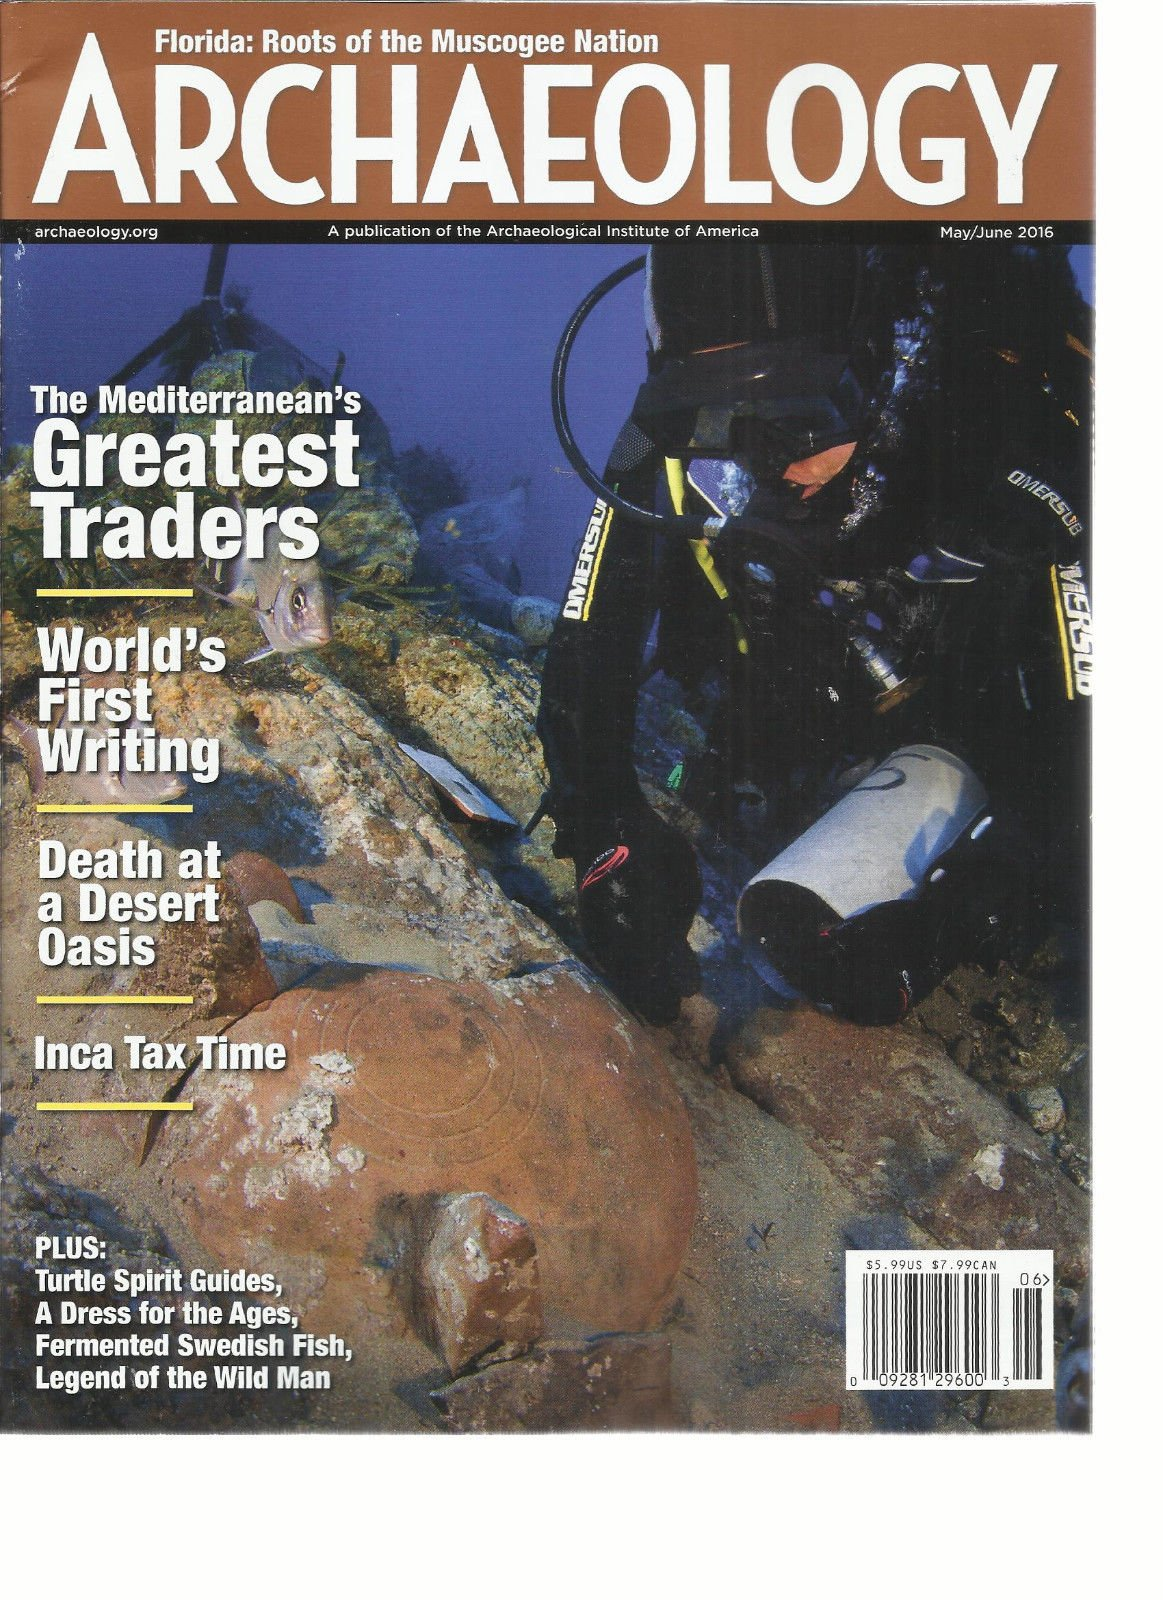 ARCHAEOLOGY, A PUBLICATION OF THE ARCHAEOLOGICAL INSTITUTE OF AMERICA 2016